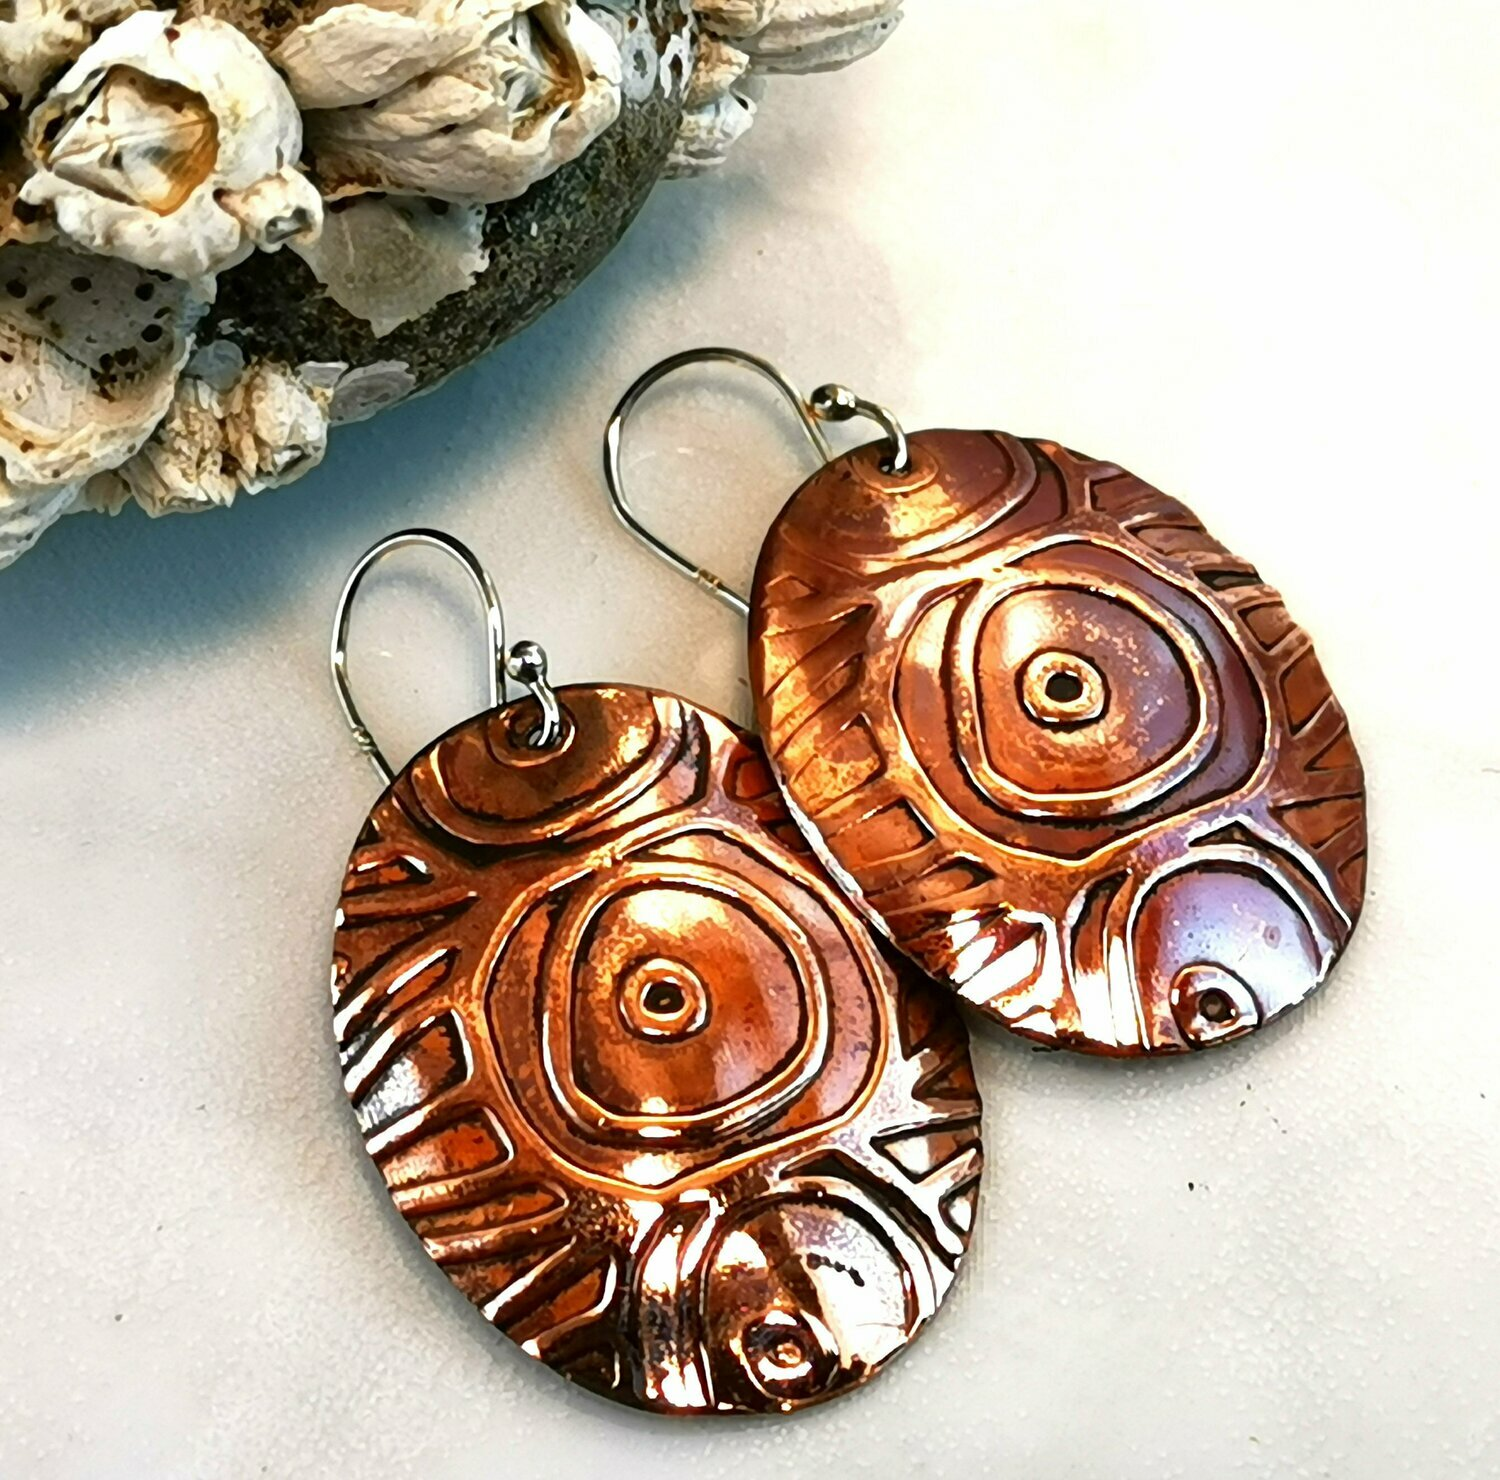 Tribal Jewelry, Tribal Earrings, Oval Jewelry, Oval Earrings, Circle Jewelry, Circle Earrings, Copper Jewelry, Copper Earrings, Oval Copper